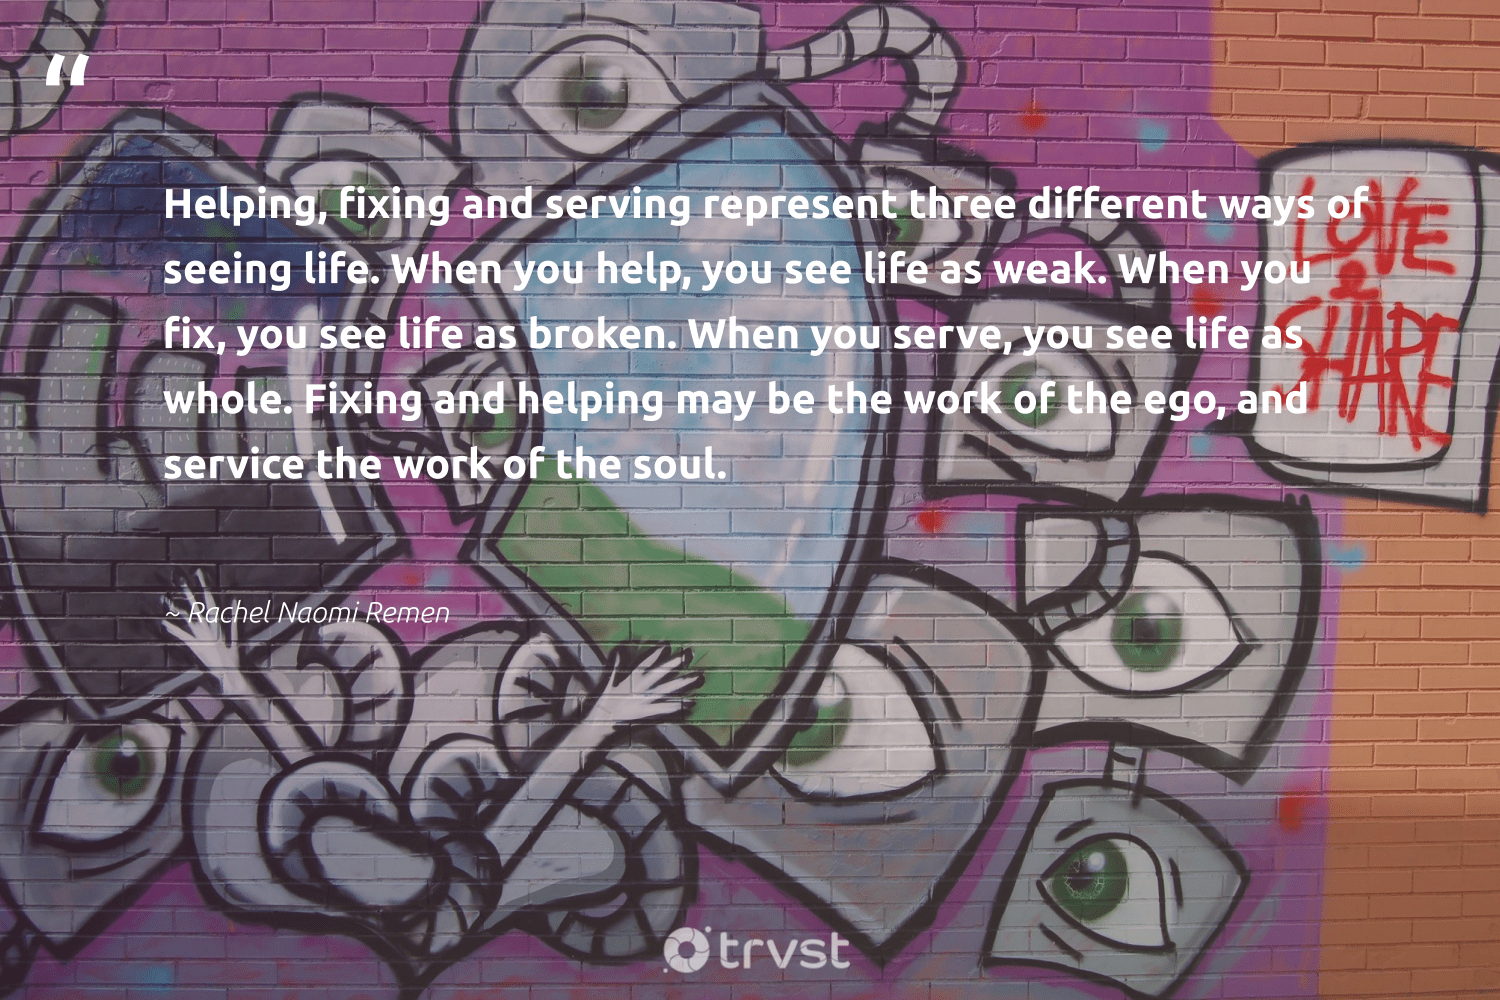 """""""Helping, fixing and serving represent three different ways of seeing life. When you help, you see life as weak. When you fix, you see life as broken. When you serve, you see life as whole. Fixing and helping may be the work of the ego, and service the work of the soul.""""  - Rachel Naomi Remen #trvst #quotes #strongercommunities #dosomething #equalopportunity #changetheworld #weareallone #socialimpact #communities #impact #society #planetearthfirst"""